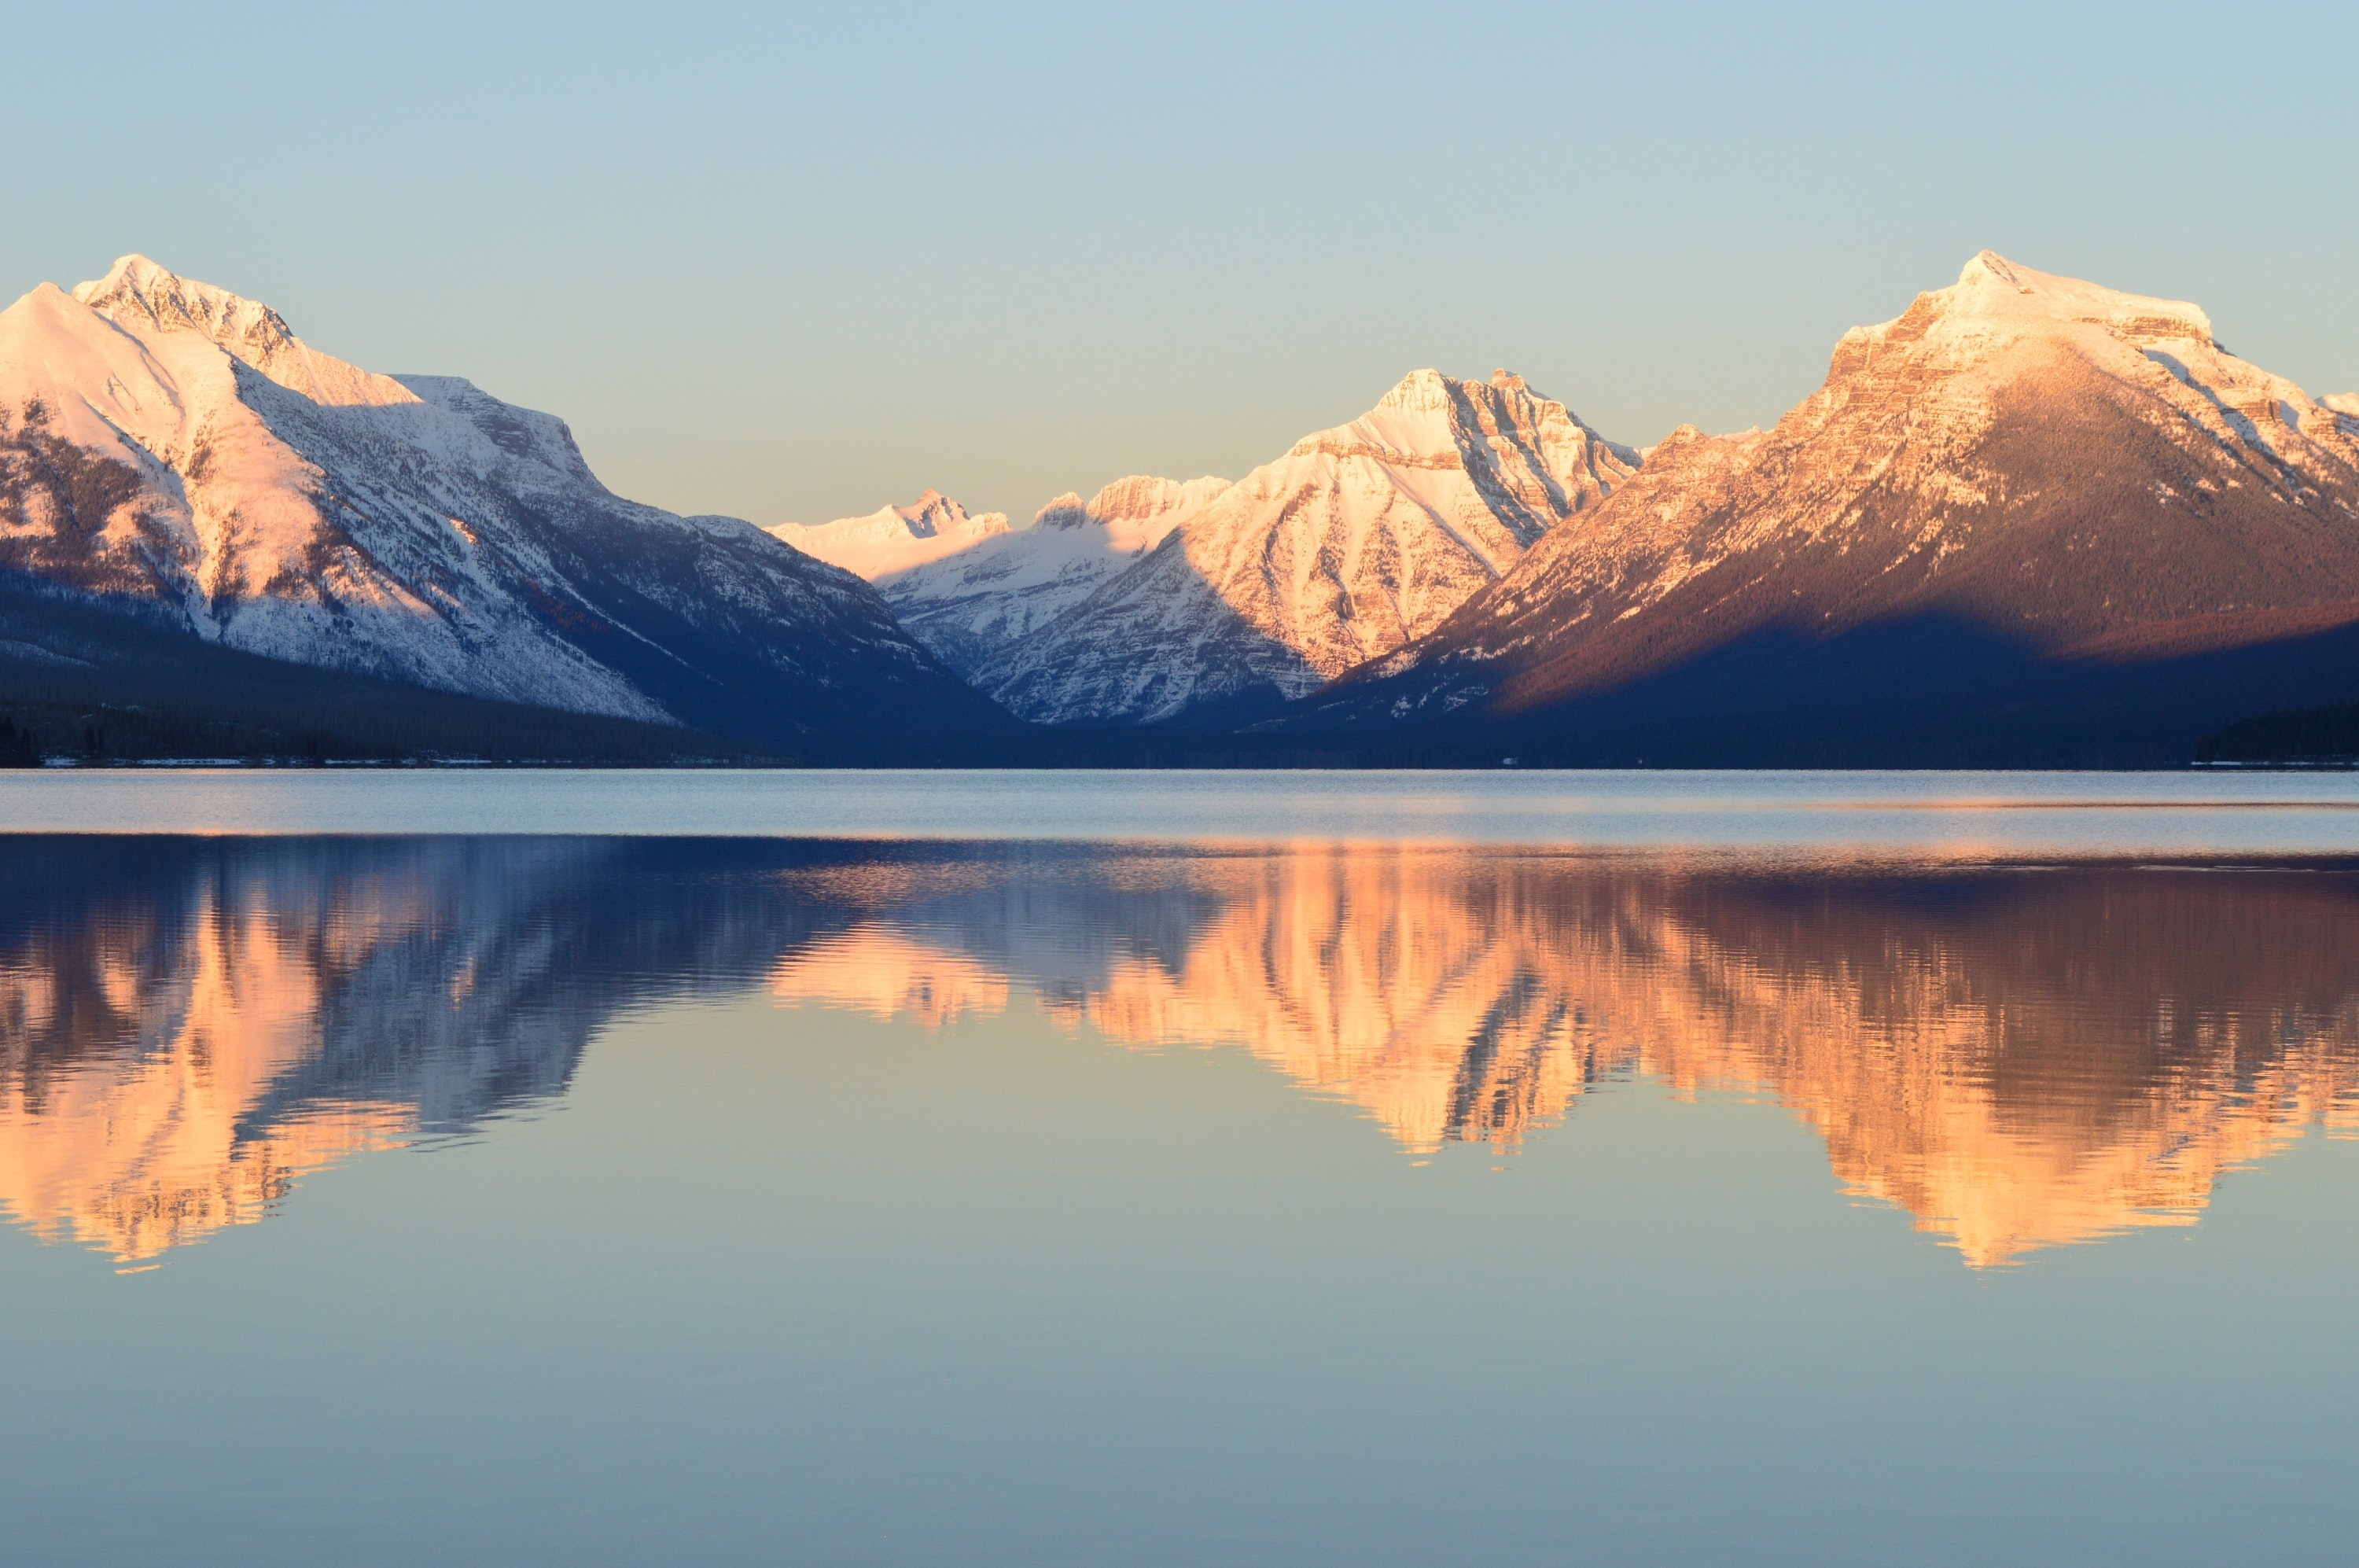 Body Of Water And Mountains Wallpaper 183 Free Stock Photo